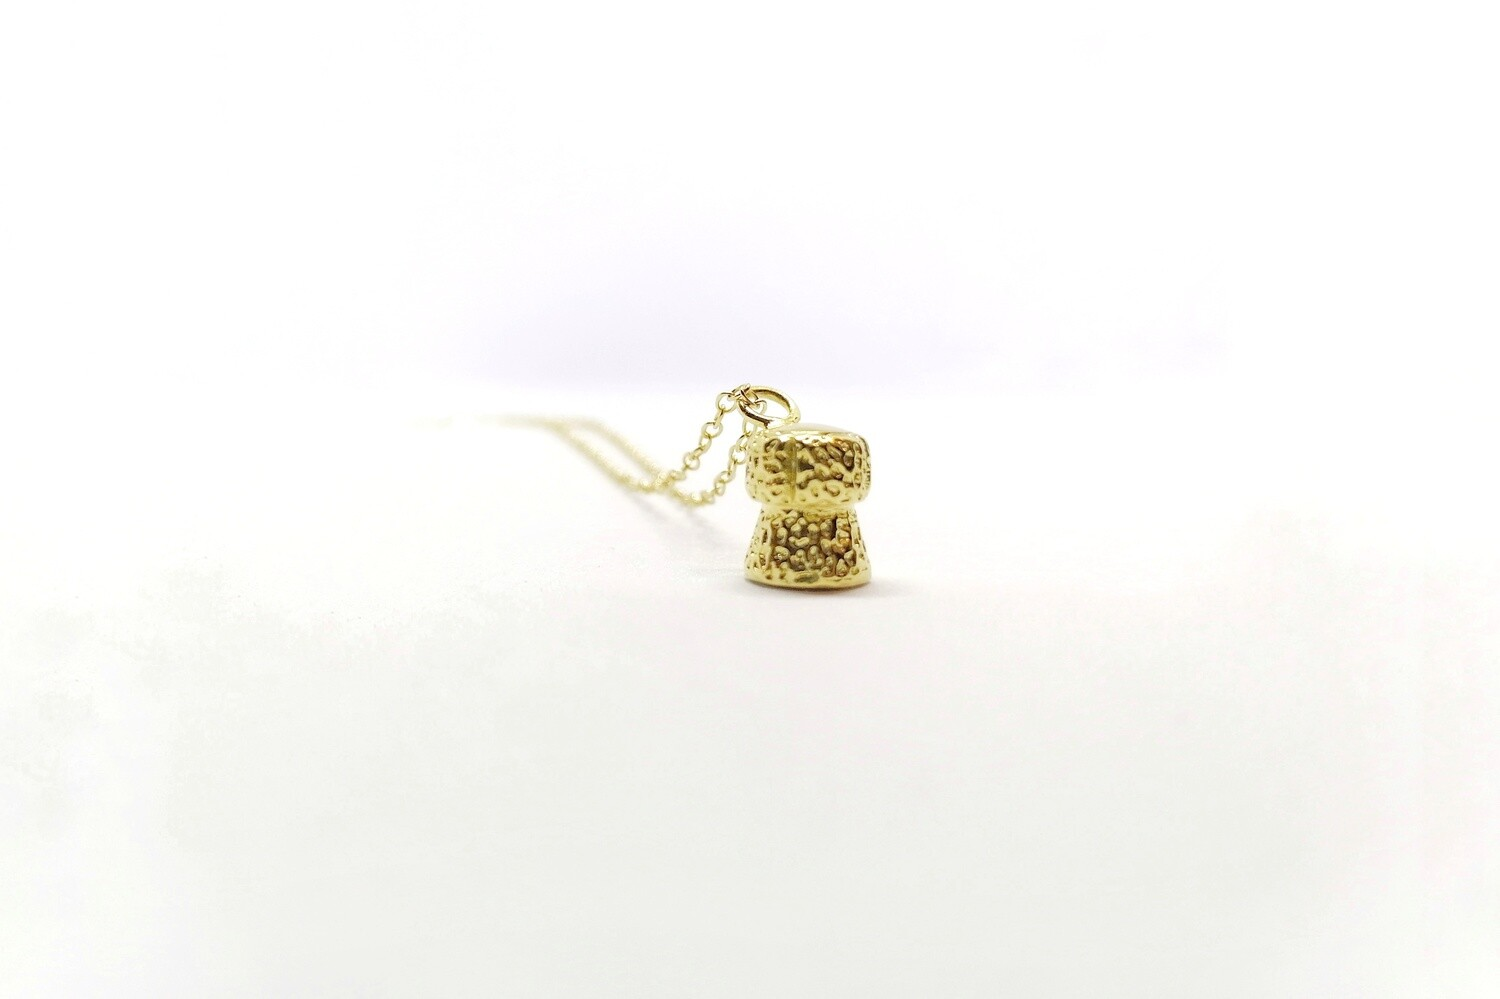 Yellow Gold Champagne Cork Pendant Necklace